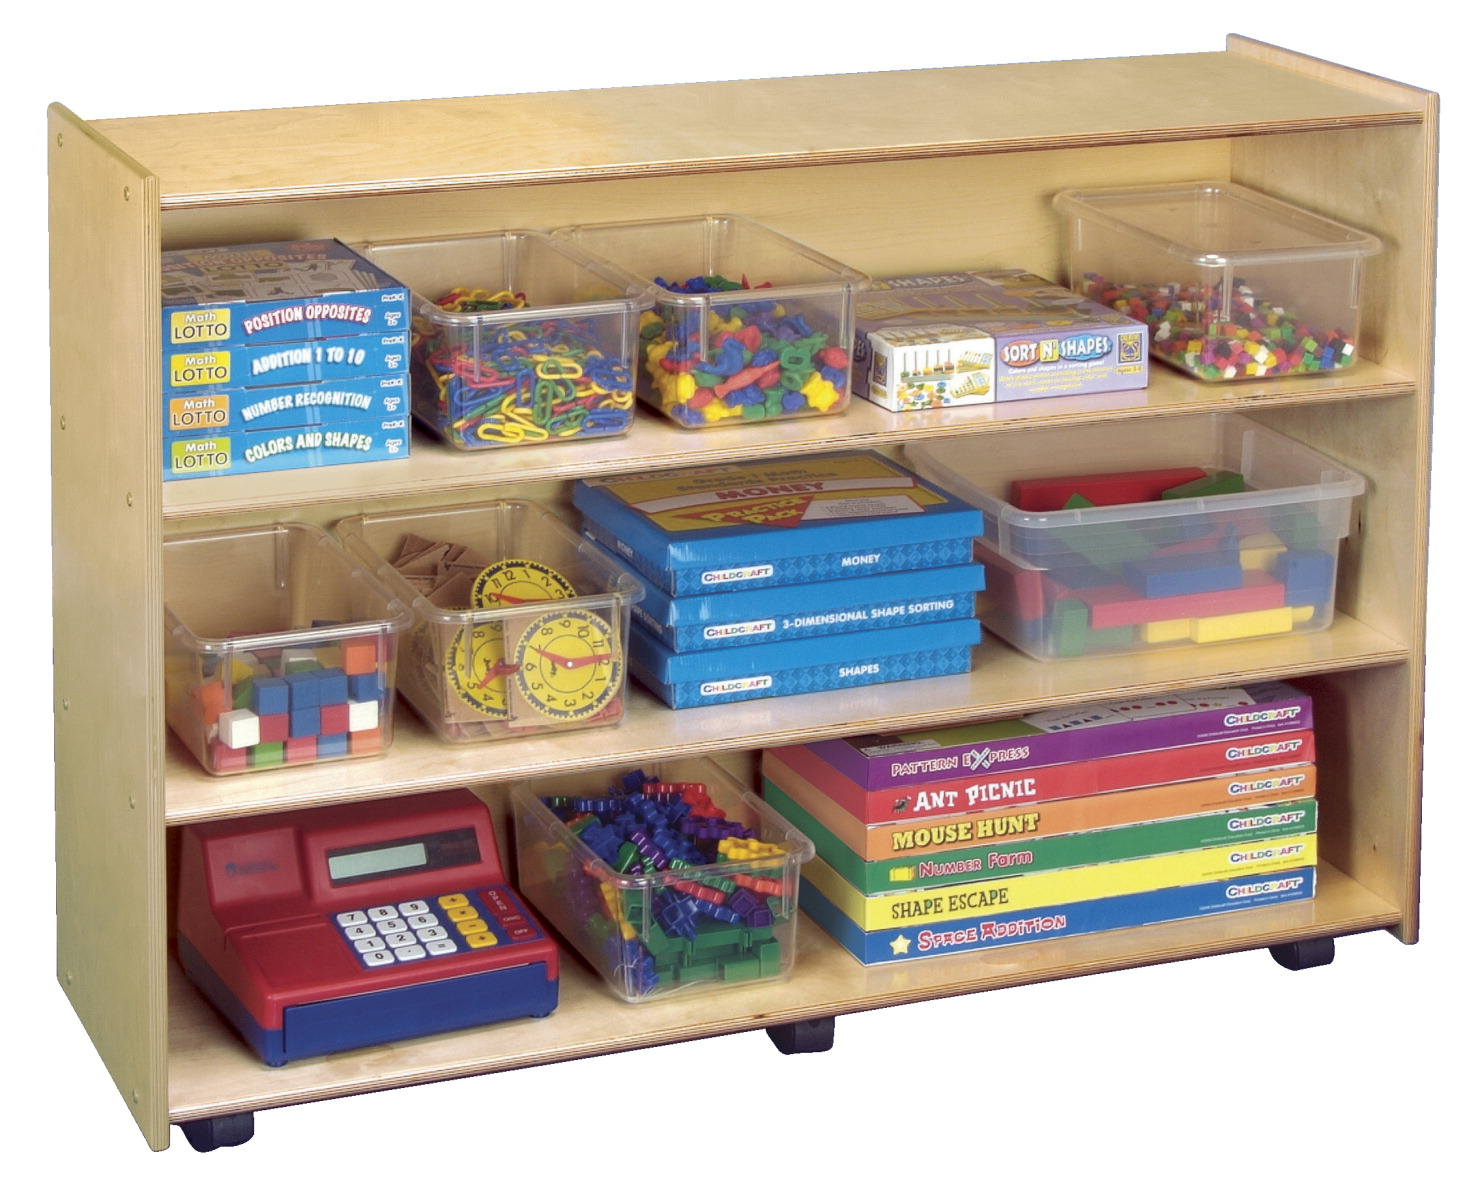 Childcraft Mobile Open Shelving Unit, 3 Shelves, 48 x 14-1/2 x 36 Inches